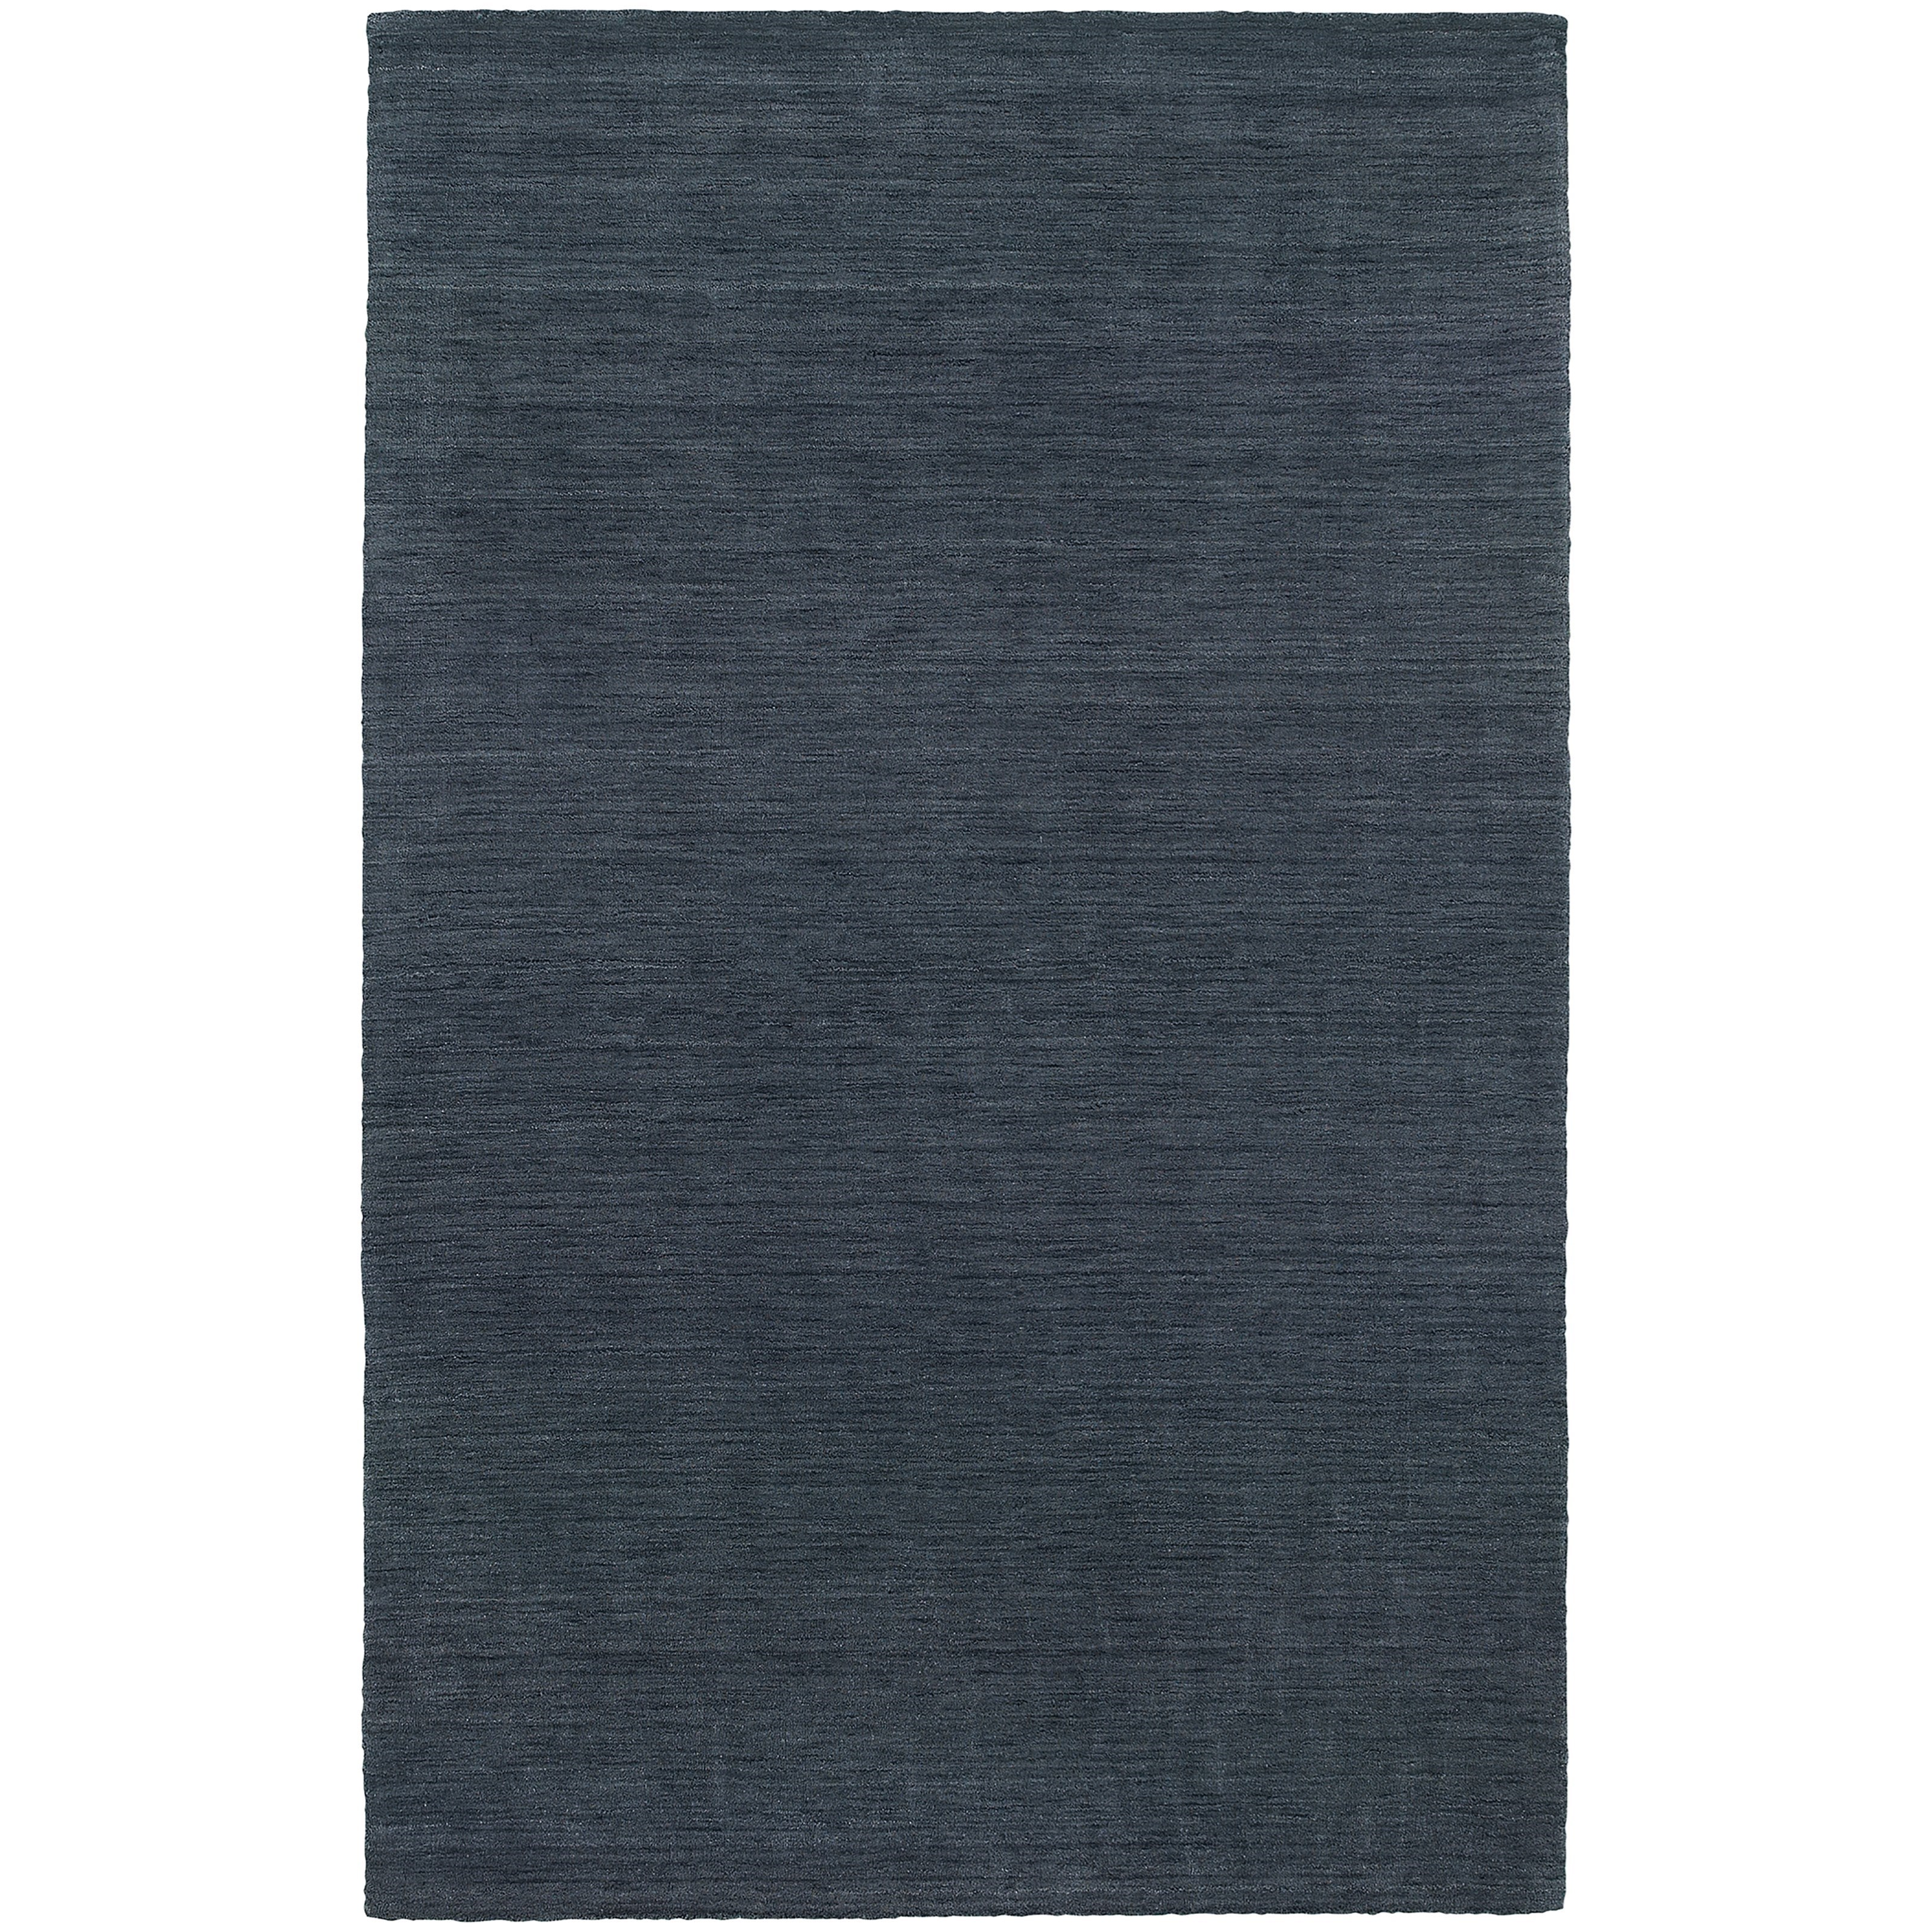 "Aniston 5' 0"" X  8' 0"" Rectangle Area Rug by Oriental Weavers at Steger's Furniture"